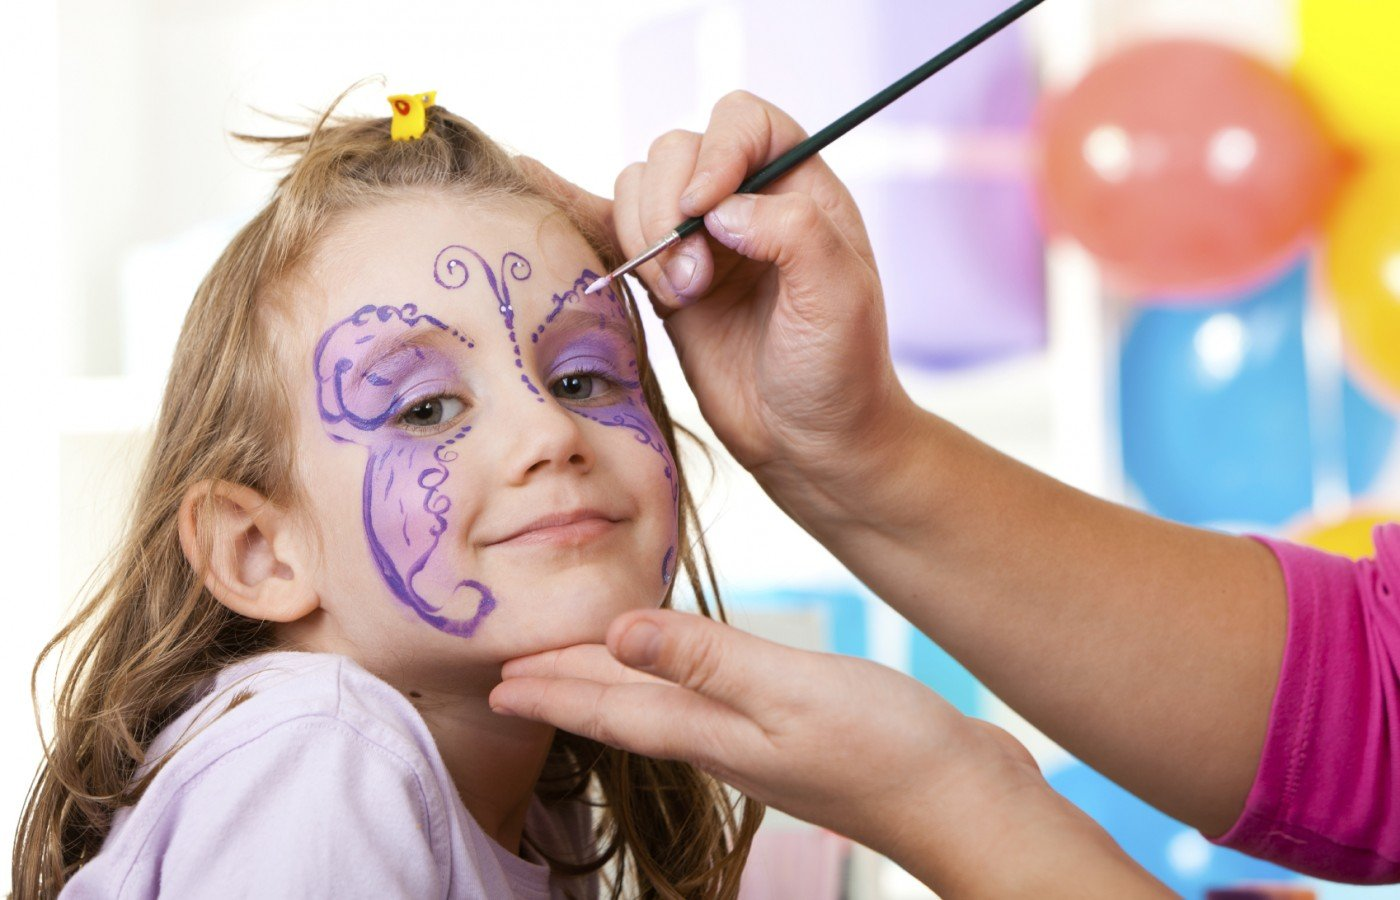 Kinderschminken Schmetterling selber machen - Fasching Make Up Ideen